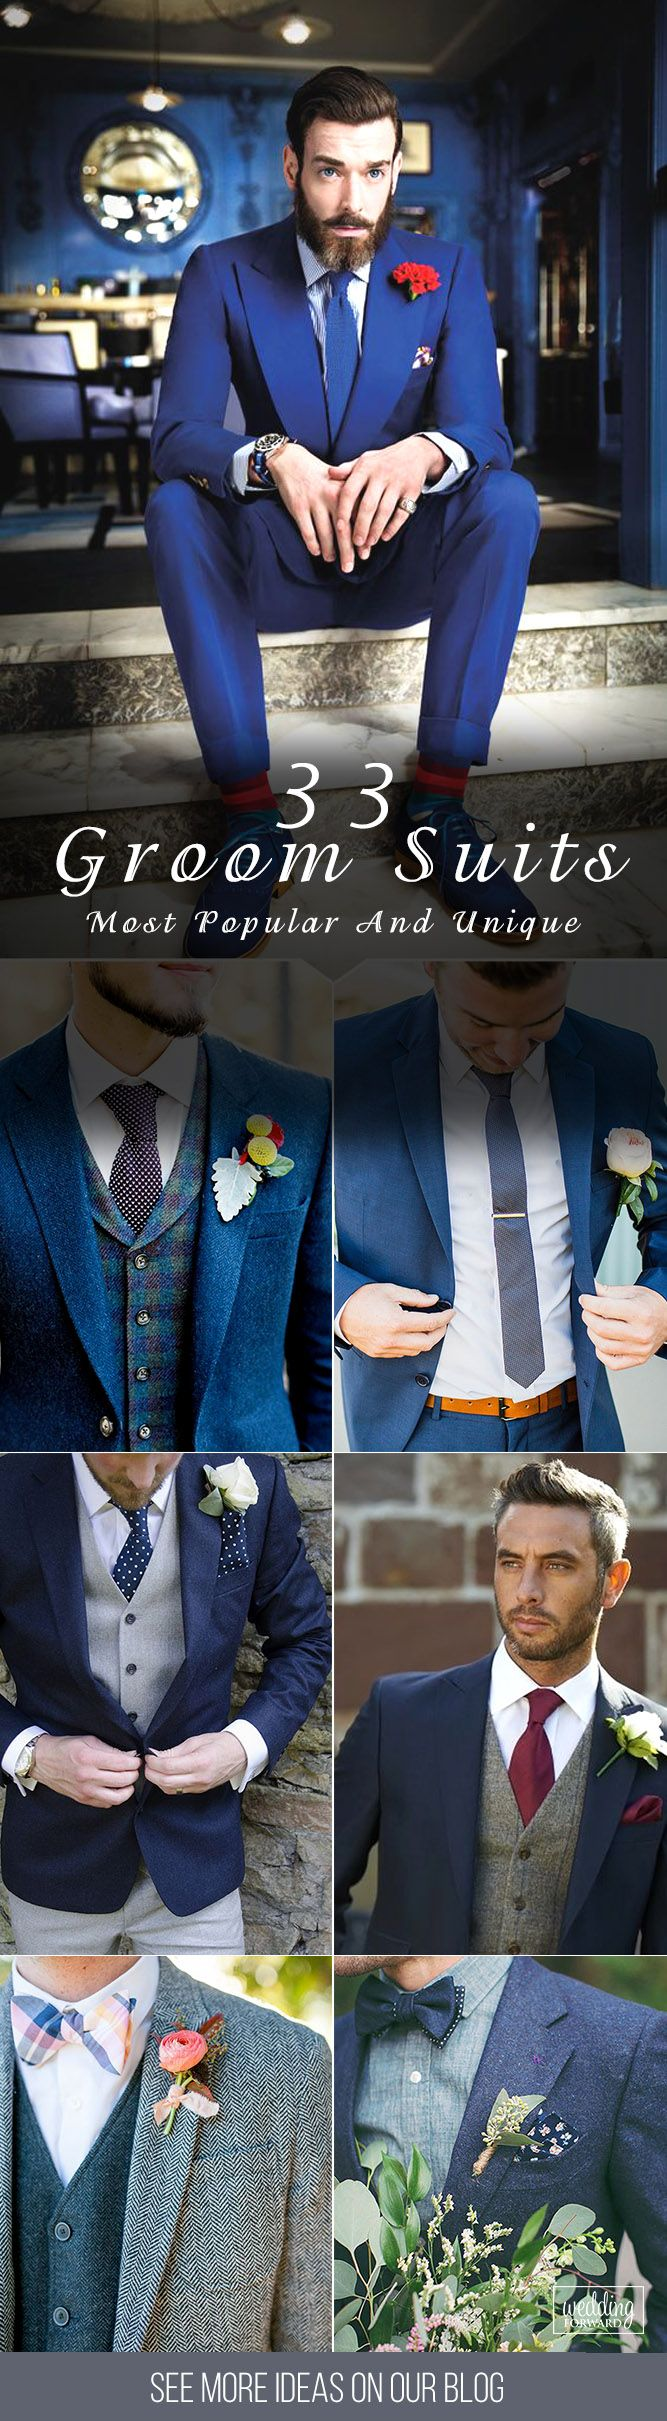 33 The Most Popular Groom Suits ❤ And the choice of groom suits becomes one of the most important events. The perfect suit well fits a groom and suits him, reflects his personality. See more http://www.weddingforward.com/groom-suits/‎#groom #groomsmen